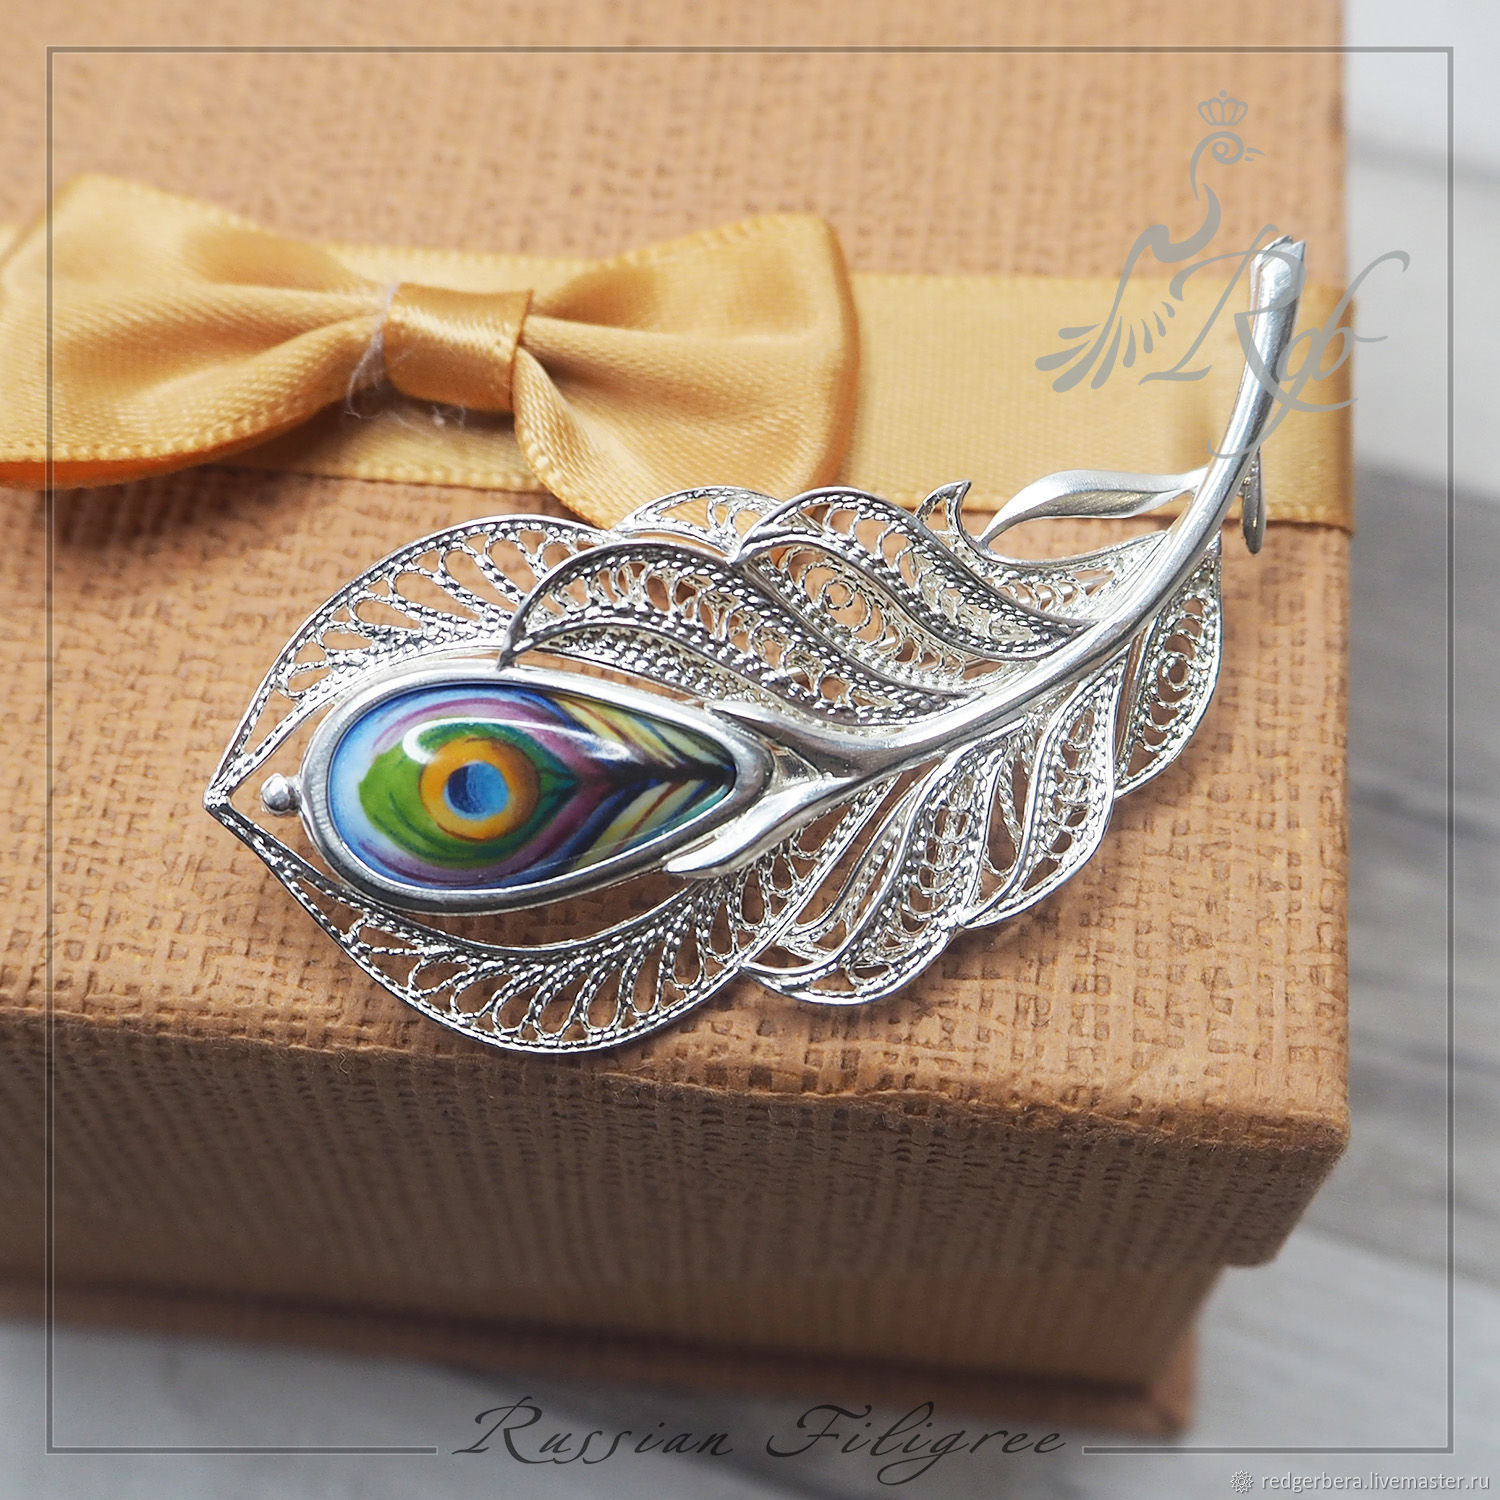 Brooch 'Feather' finift, silver 999 samples, Brooches, Kostroma,  Фото №1